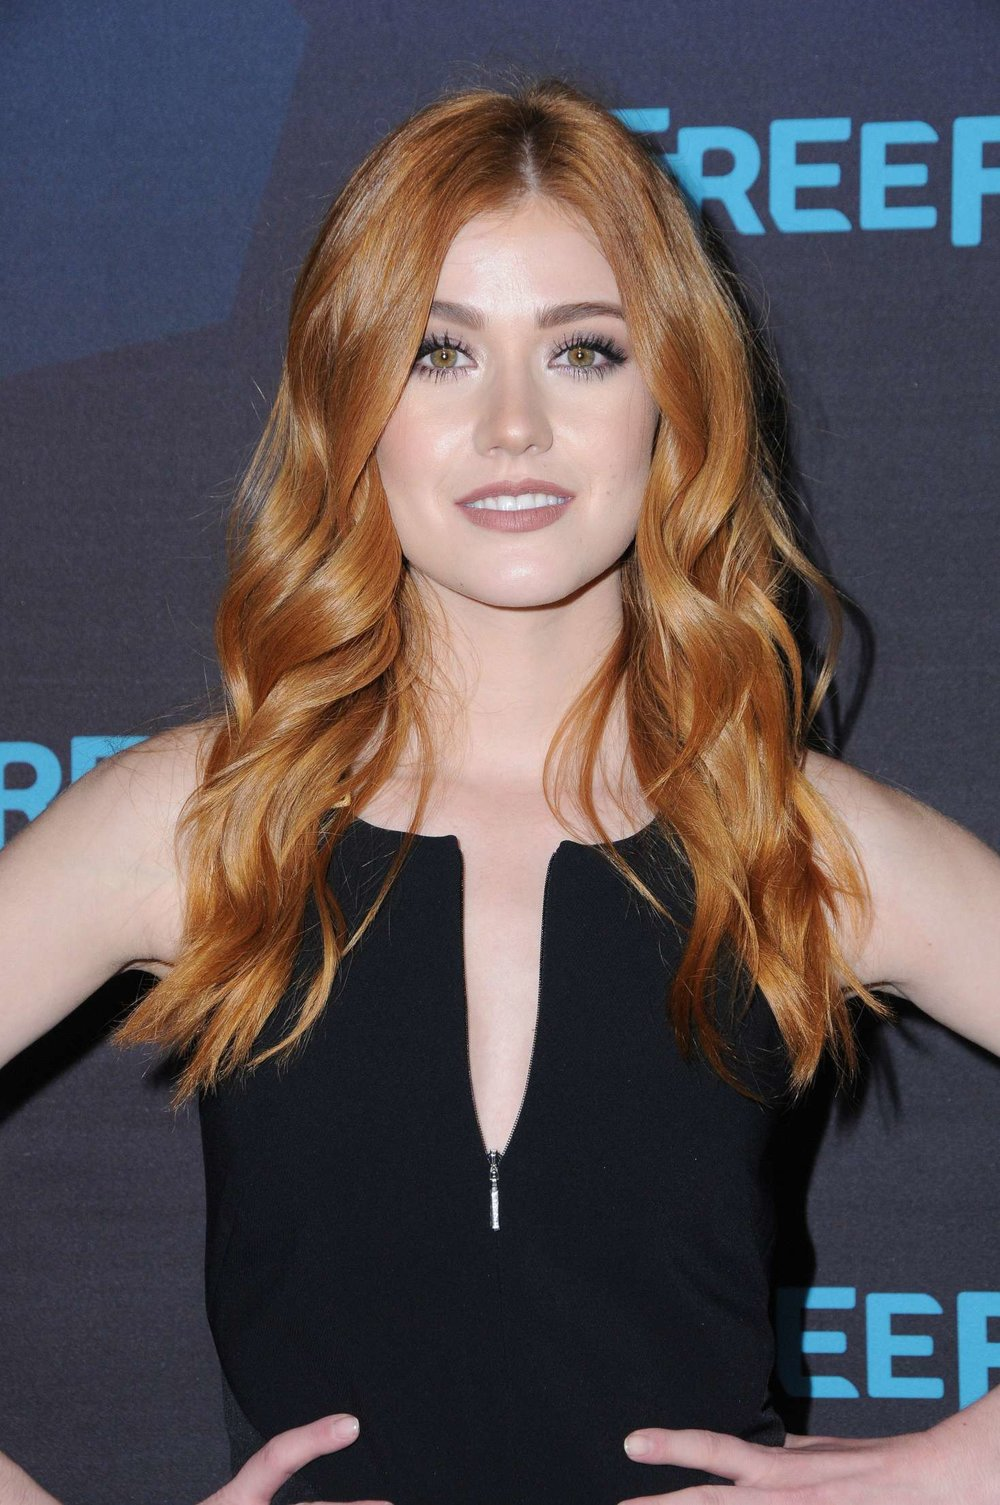 Katherine-McNamara--Disney-ABC-Television-Hosts-TCA-Winter-Press-Tour-2017--02.jpg